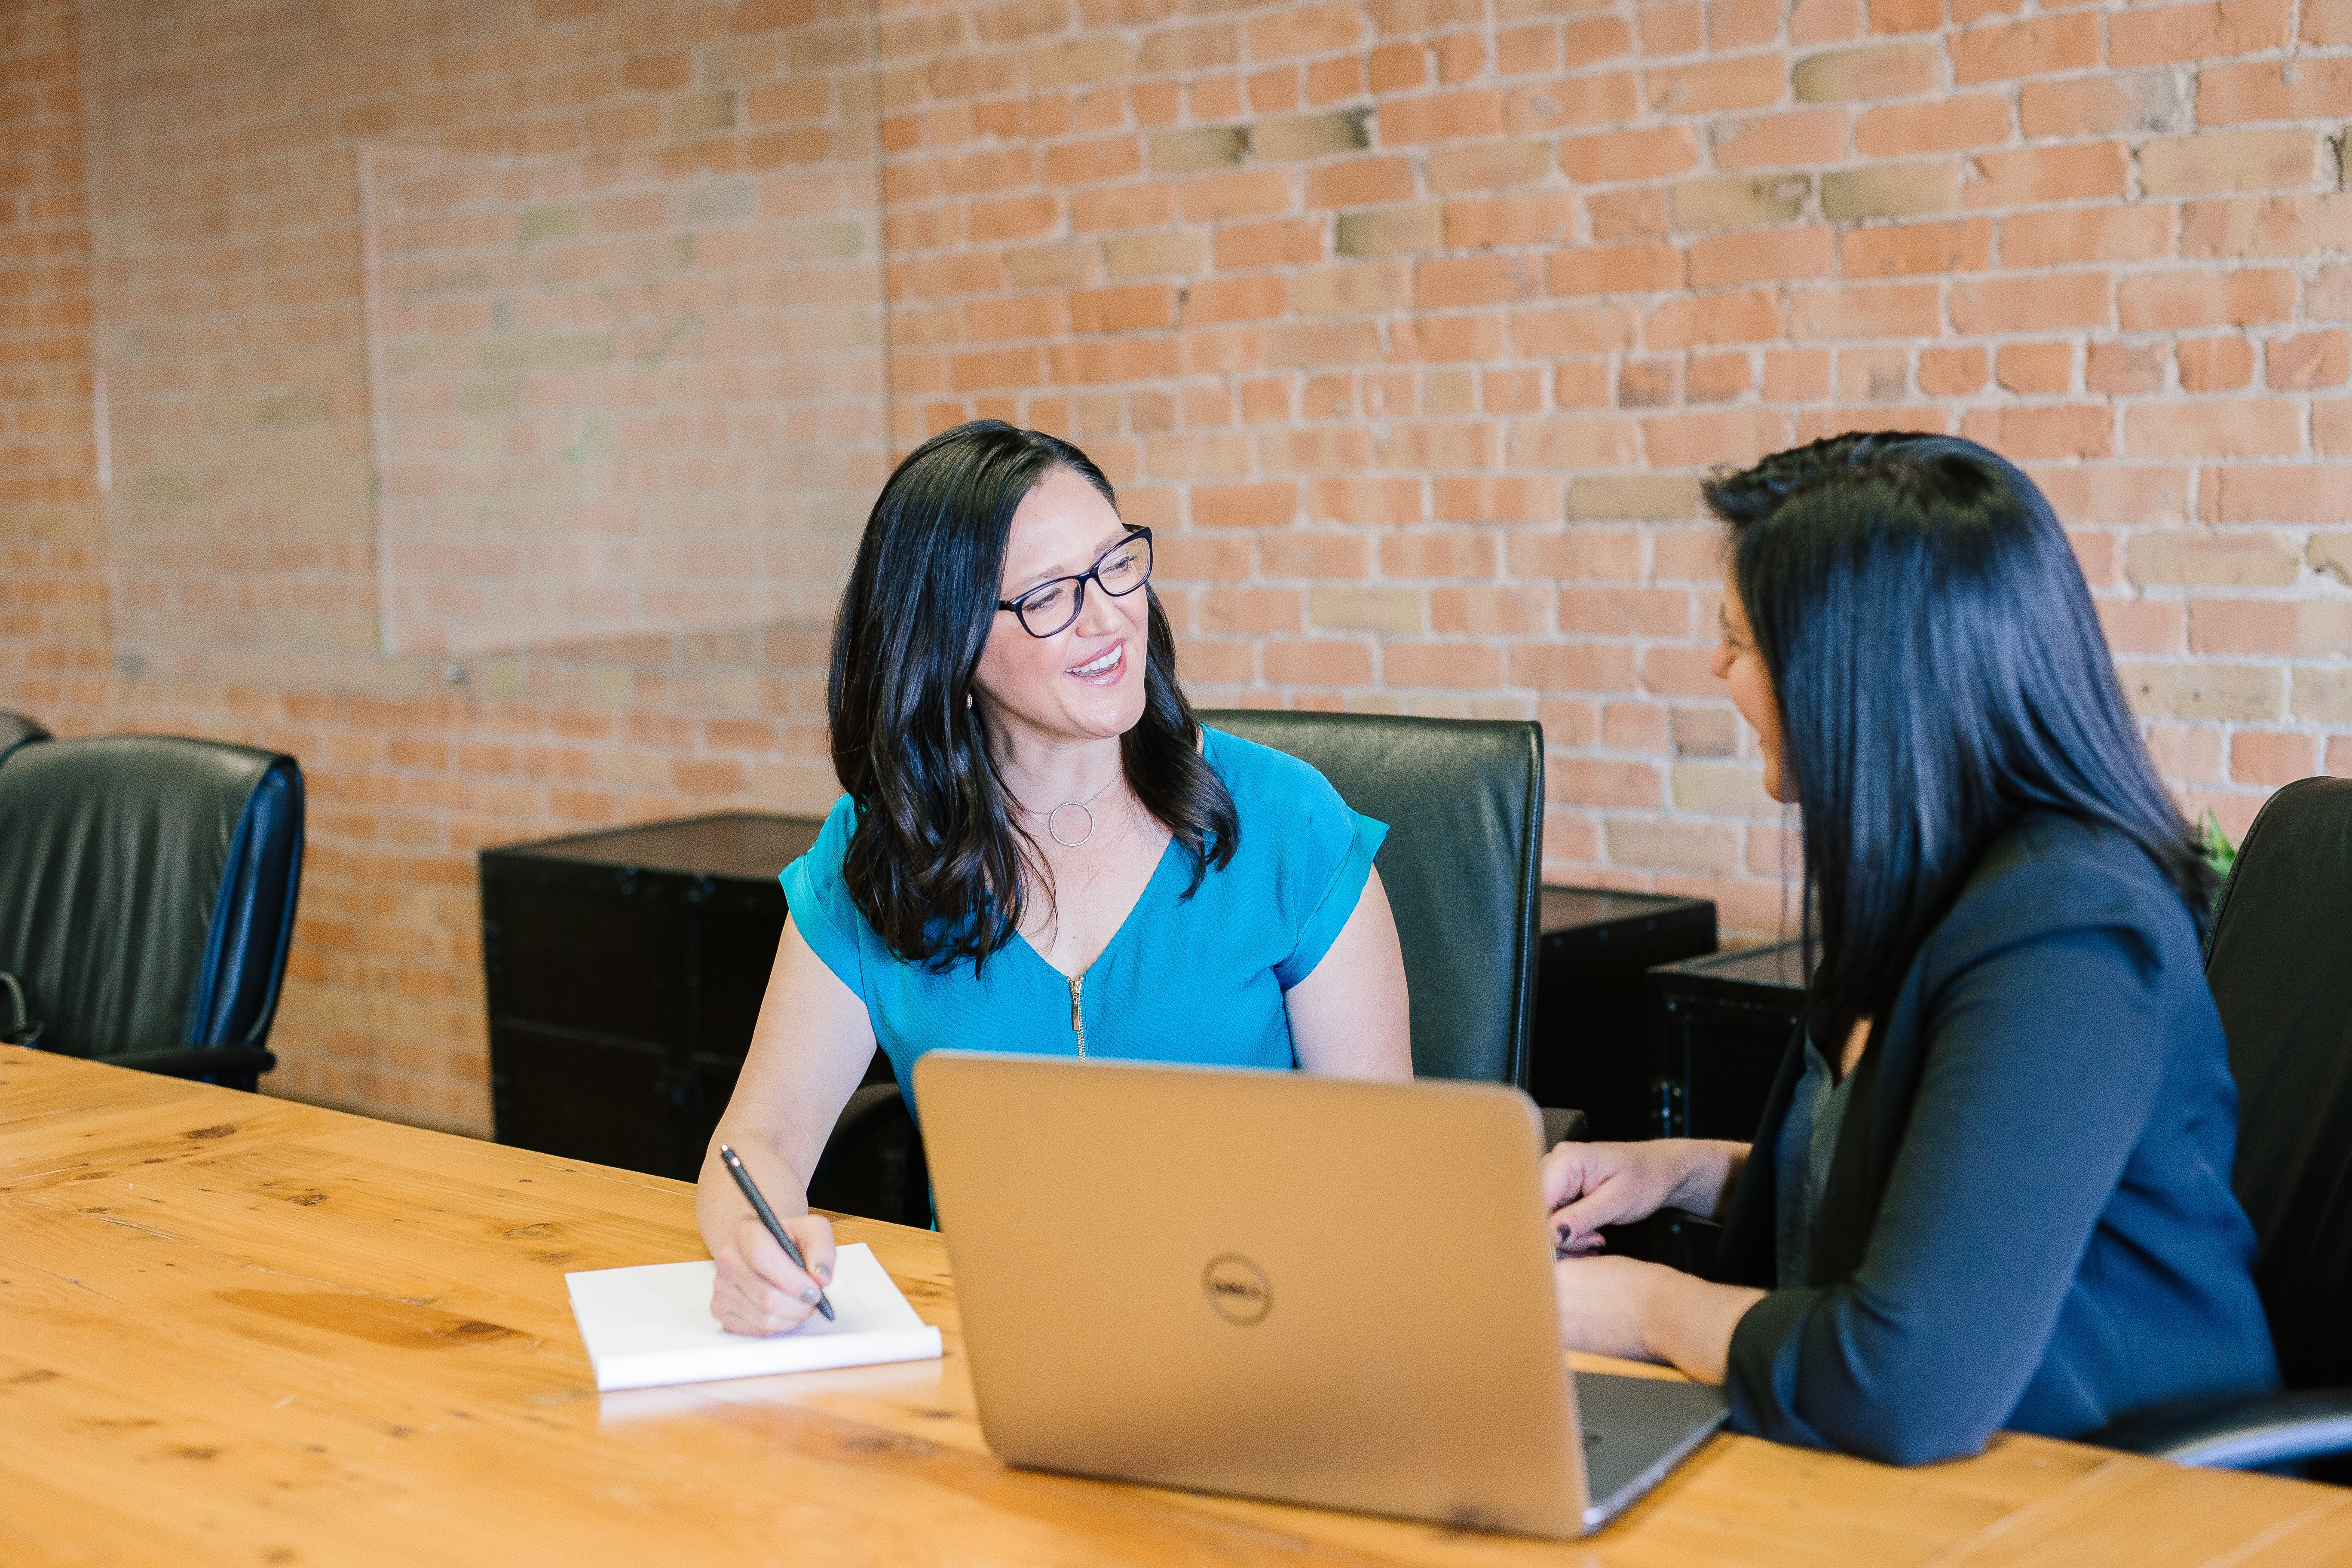 Using Every HR to support absence management